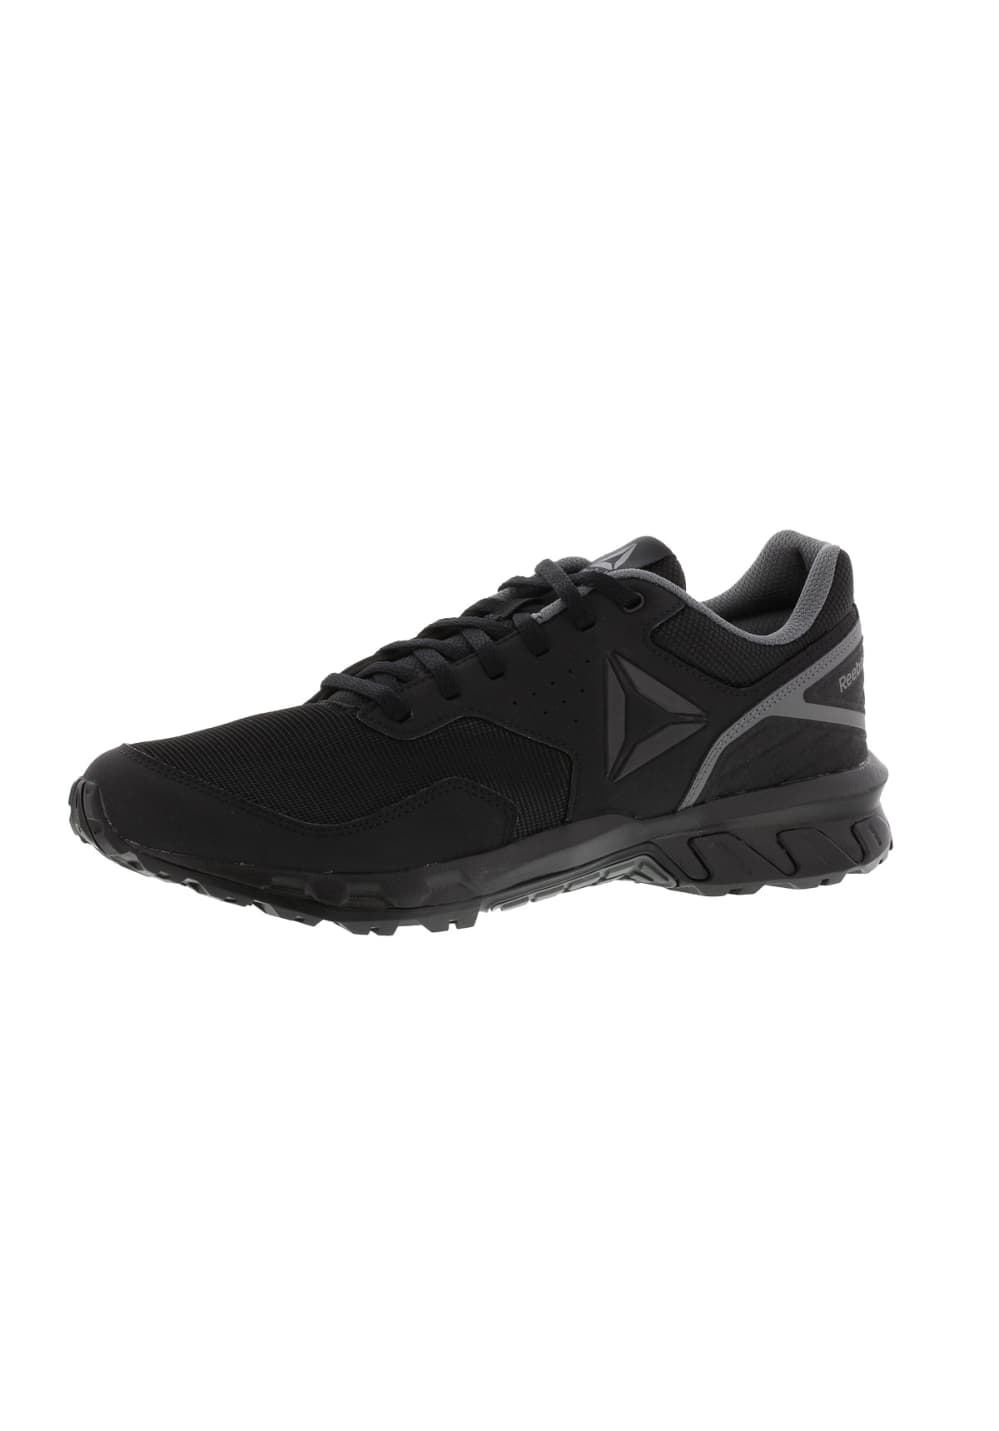 Reebok Ridgerider Trail 4 - Walking shoes for Men - Black  4b43e6c4d